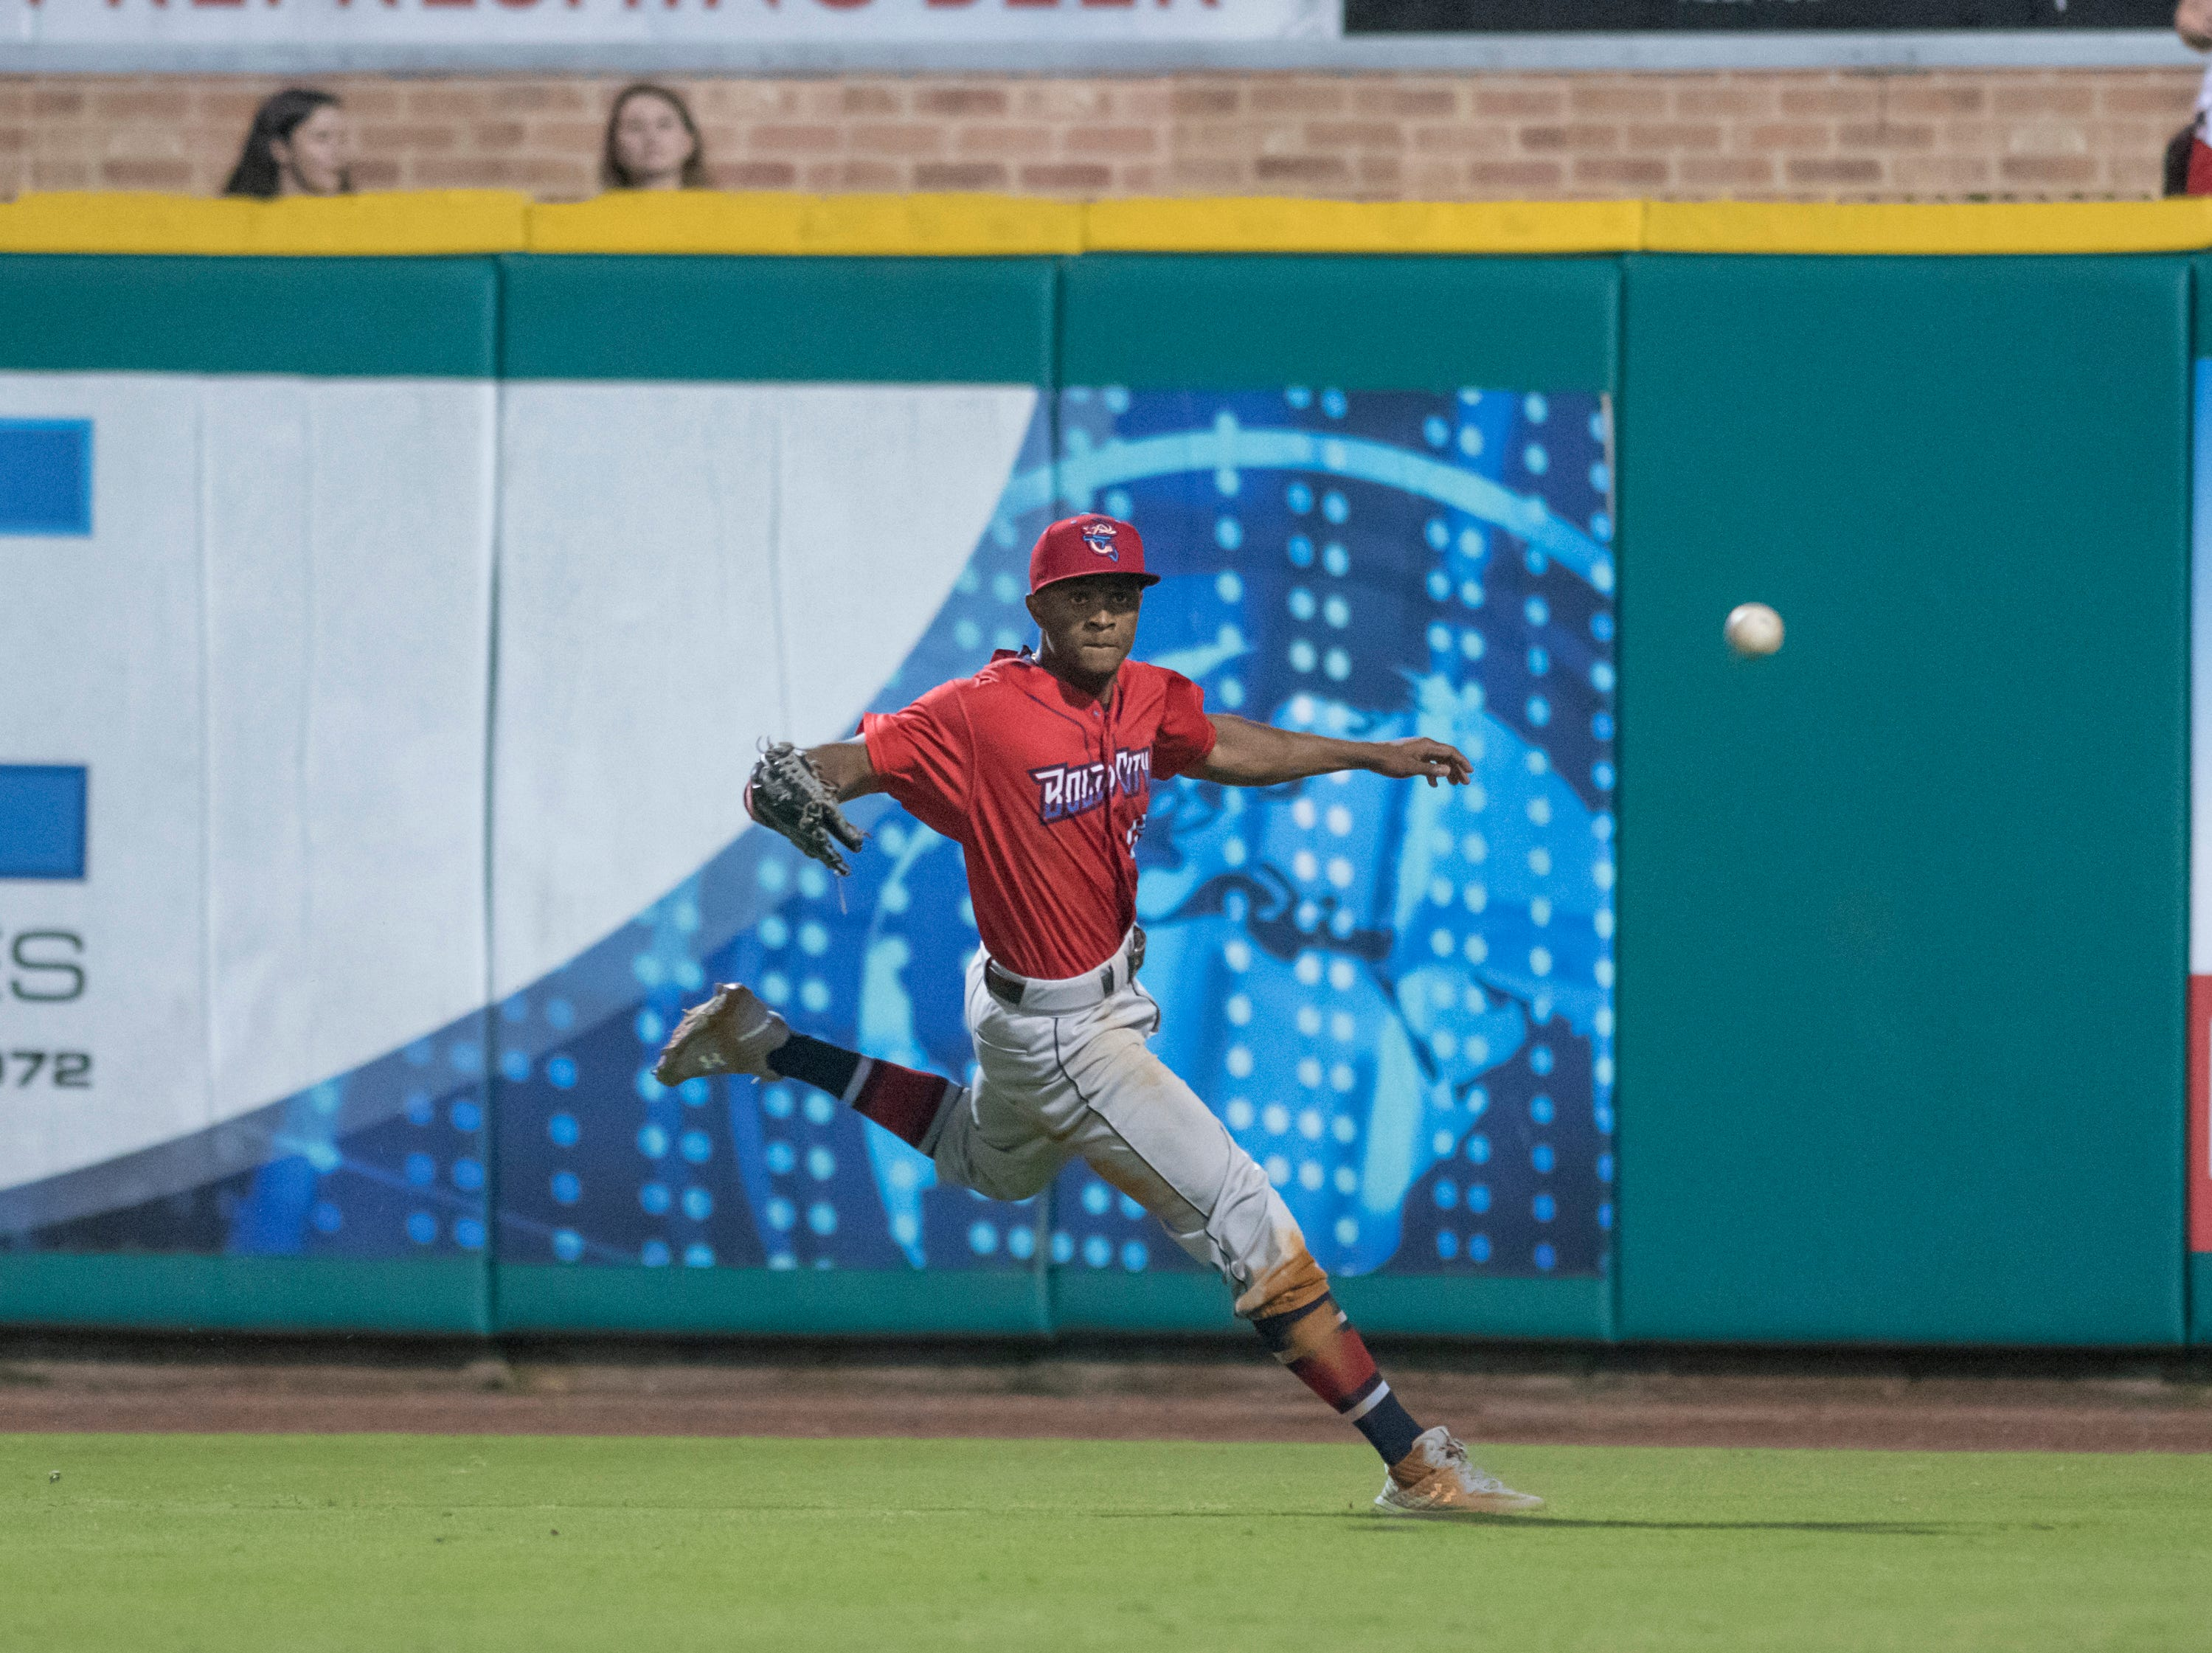 Magneuris Sierra (18) tracks down Drew Maggi (15)'s looper into right field before catching him too far off first for the last out of the inning during the Jacksonville Jumbo Shrimp vs Pensacola Blue Wahoos baseball game in Pensacola on Friday, April 12, 2019.